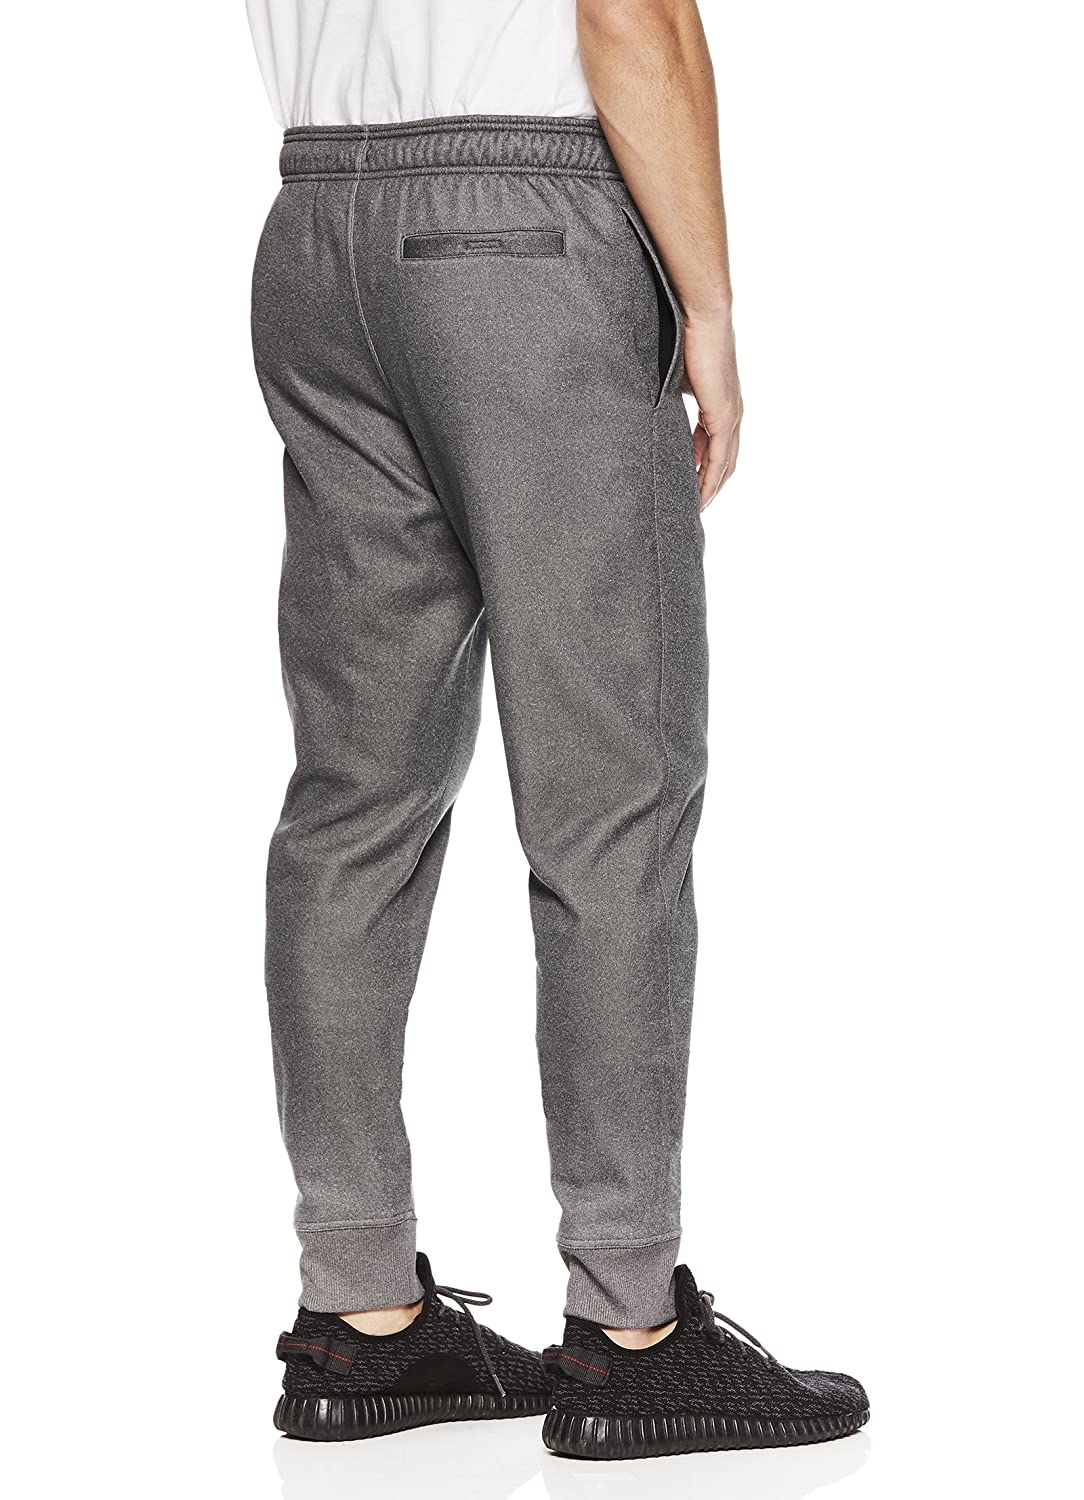 Athletic Workout Sweatpants Reebok Mens Jogger Running Pants with Zipper Pockets